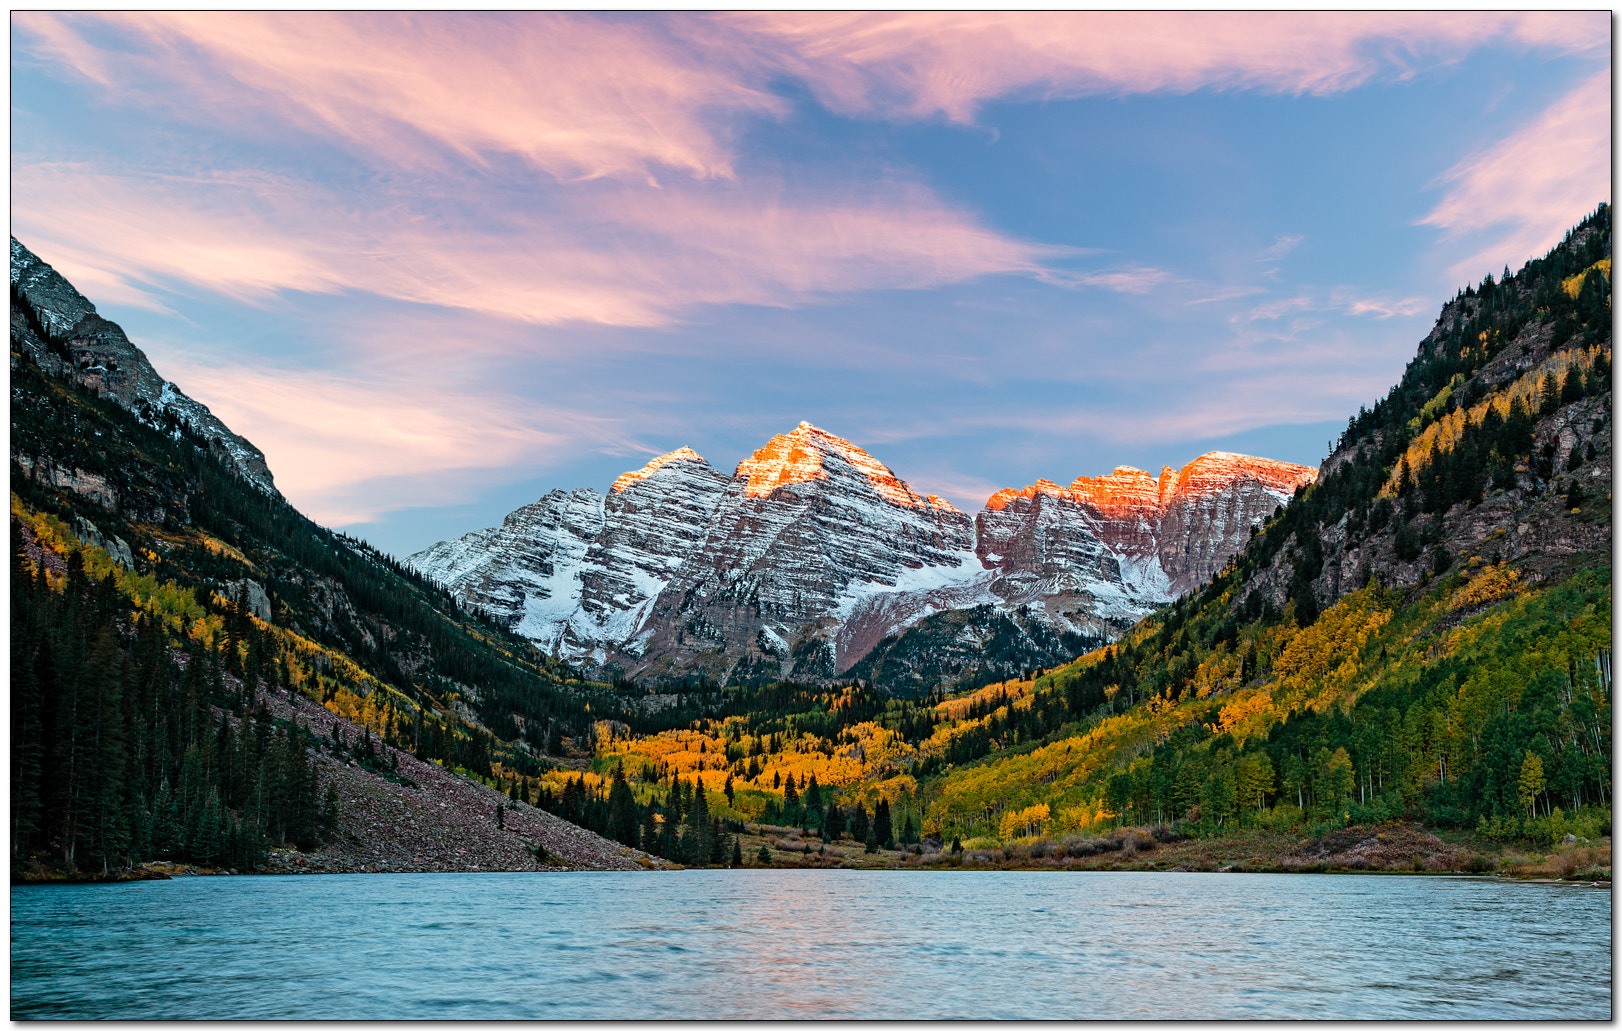 Photograph Maroon Bells, CO by Jameel Hyder on 500px